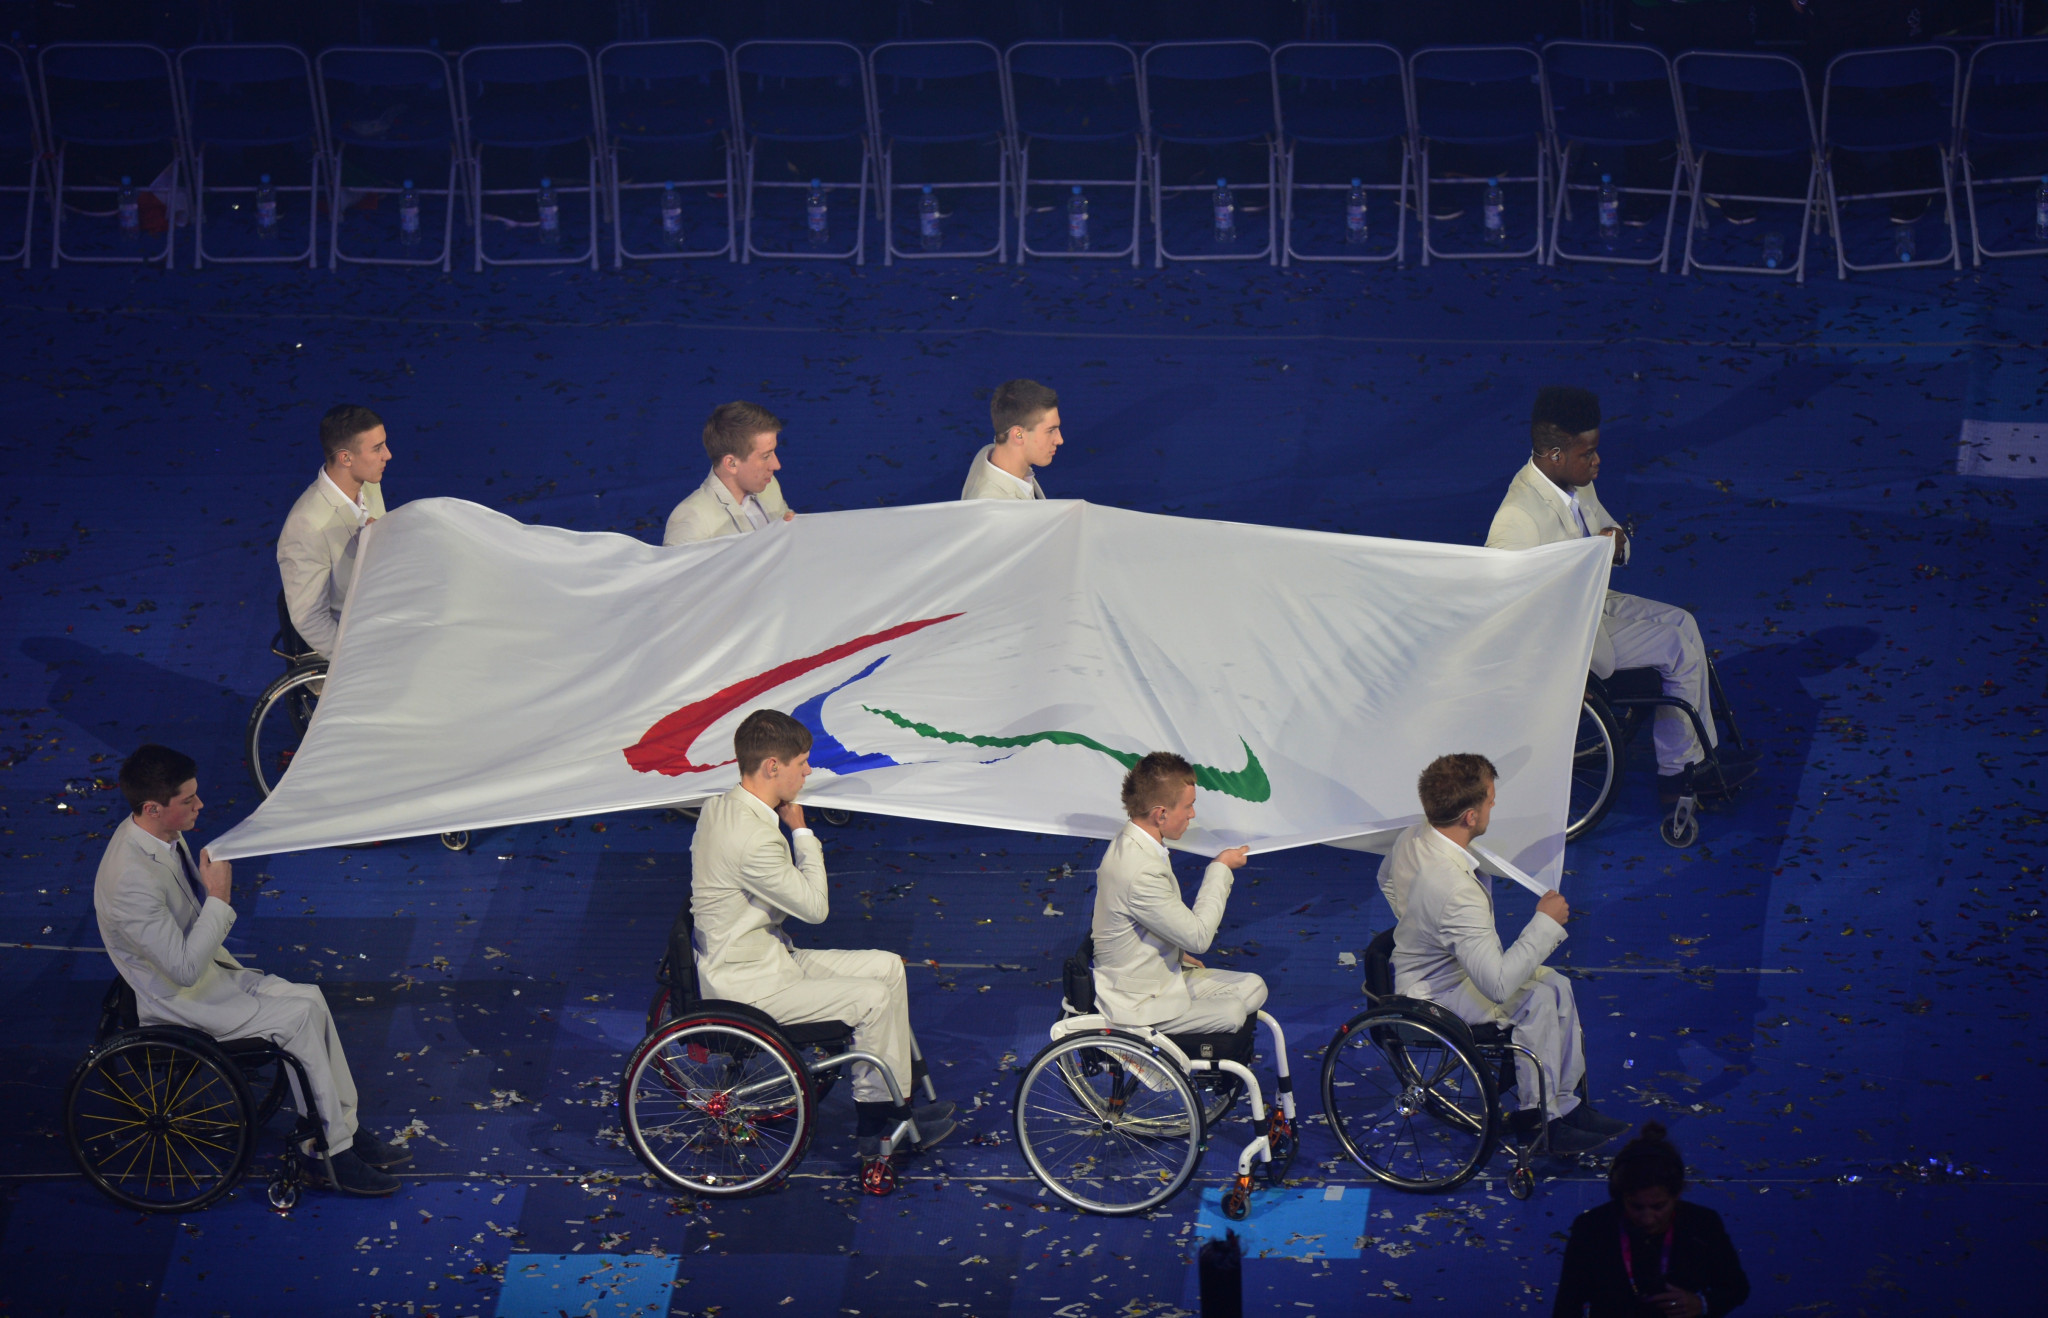 The Paralympic Flag is carried to be raised during the opening ceremony of the London 2012 Paralympic Games at the Olympic Stadium in east London on August 29, 2012 ©Getty Images